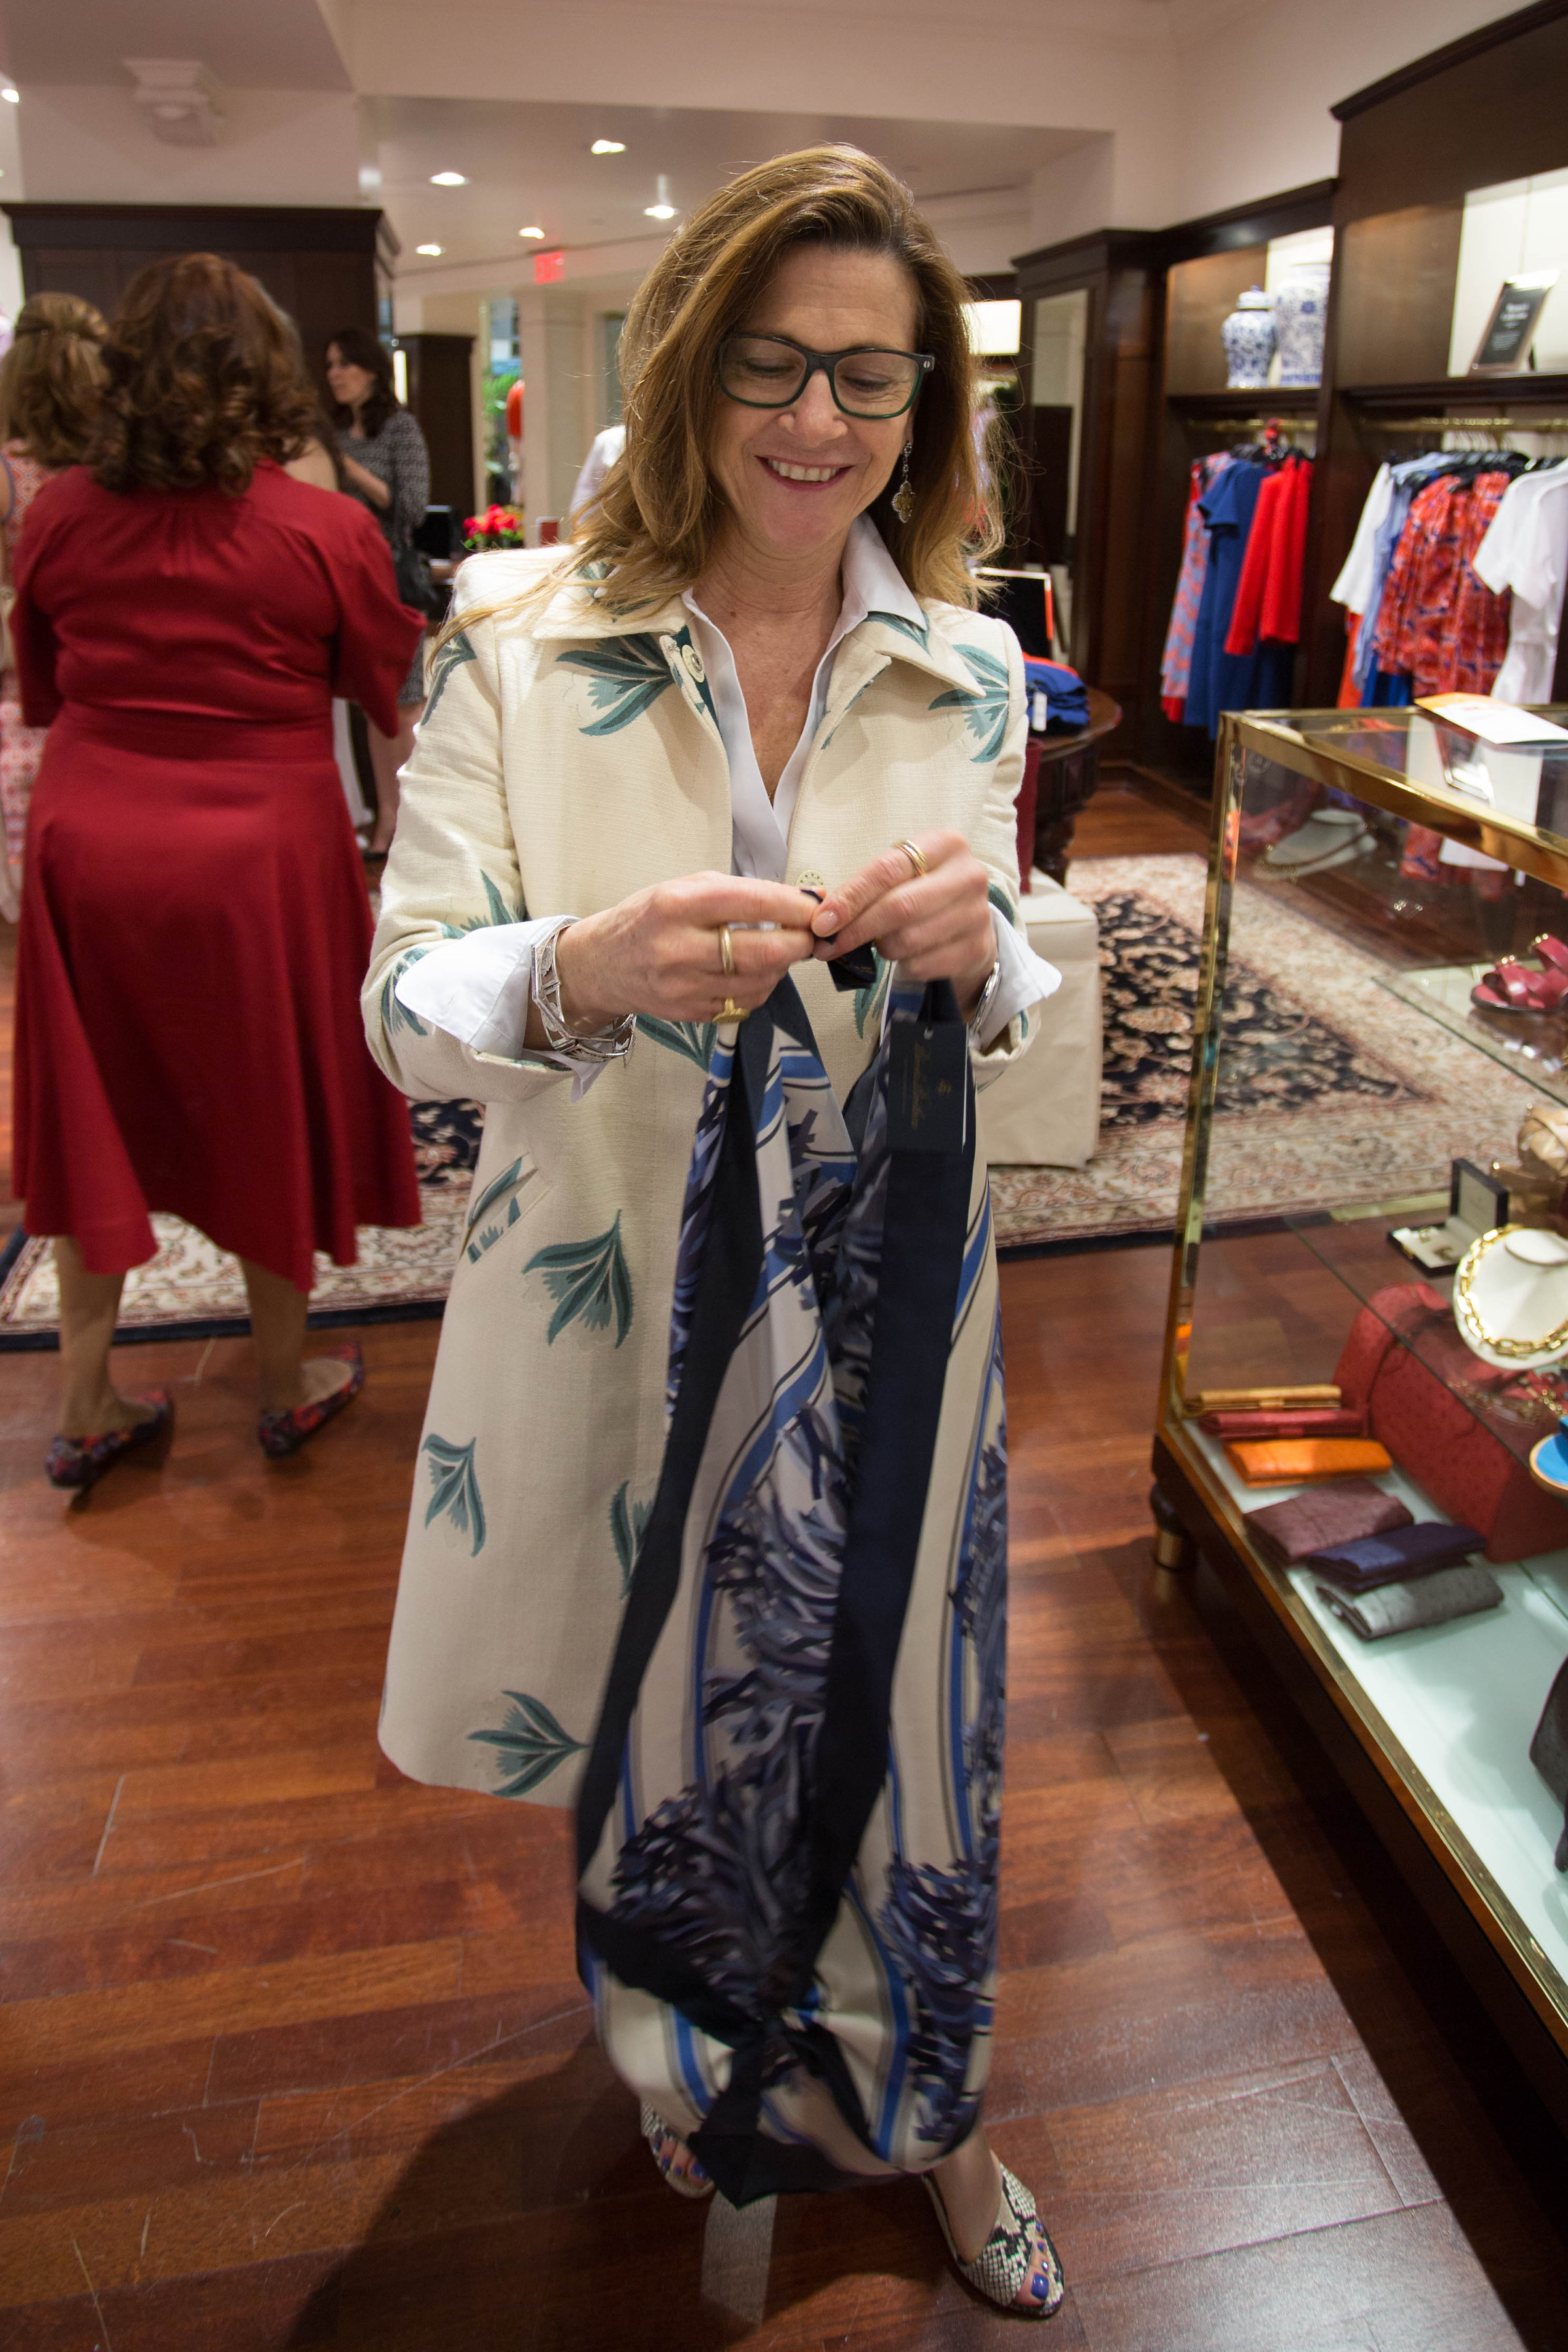 *Stacy Wallace-Albert Giving Styling Tips with Scarf